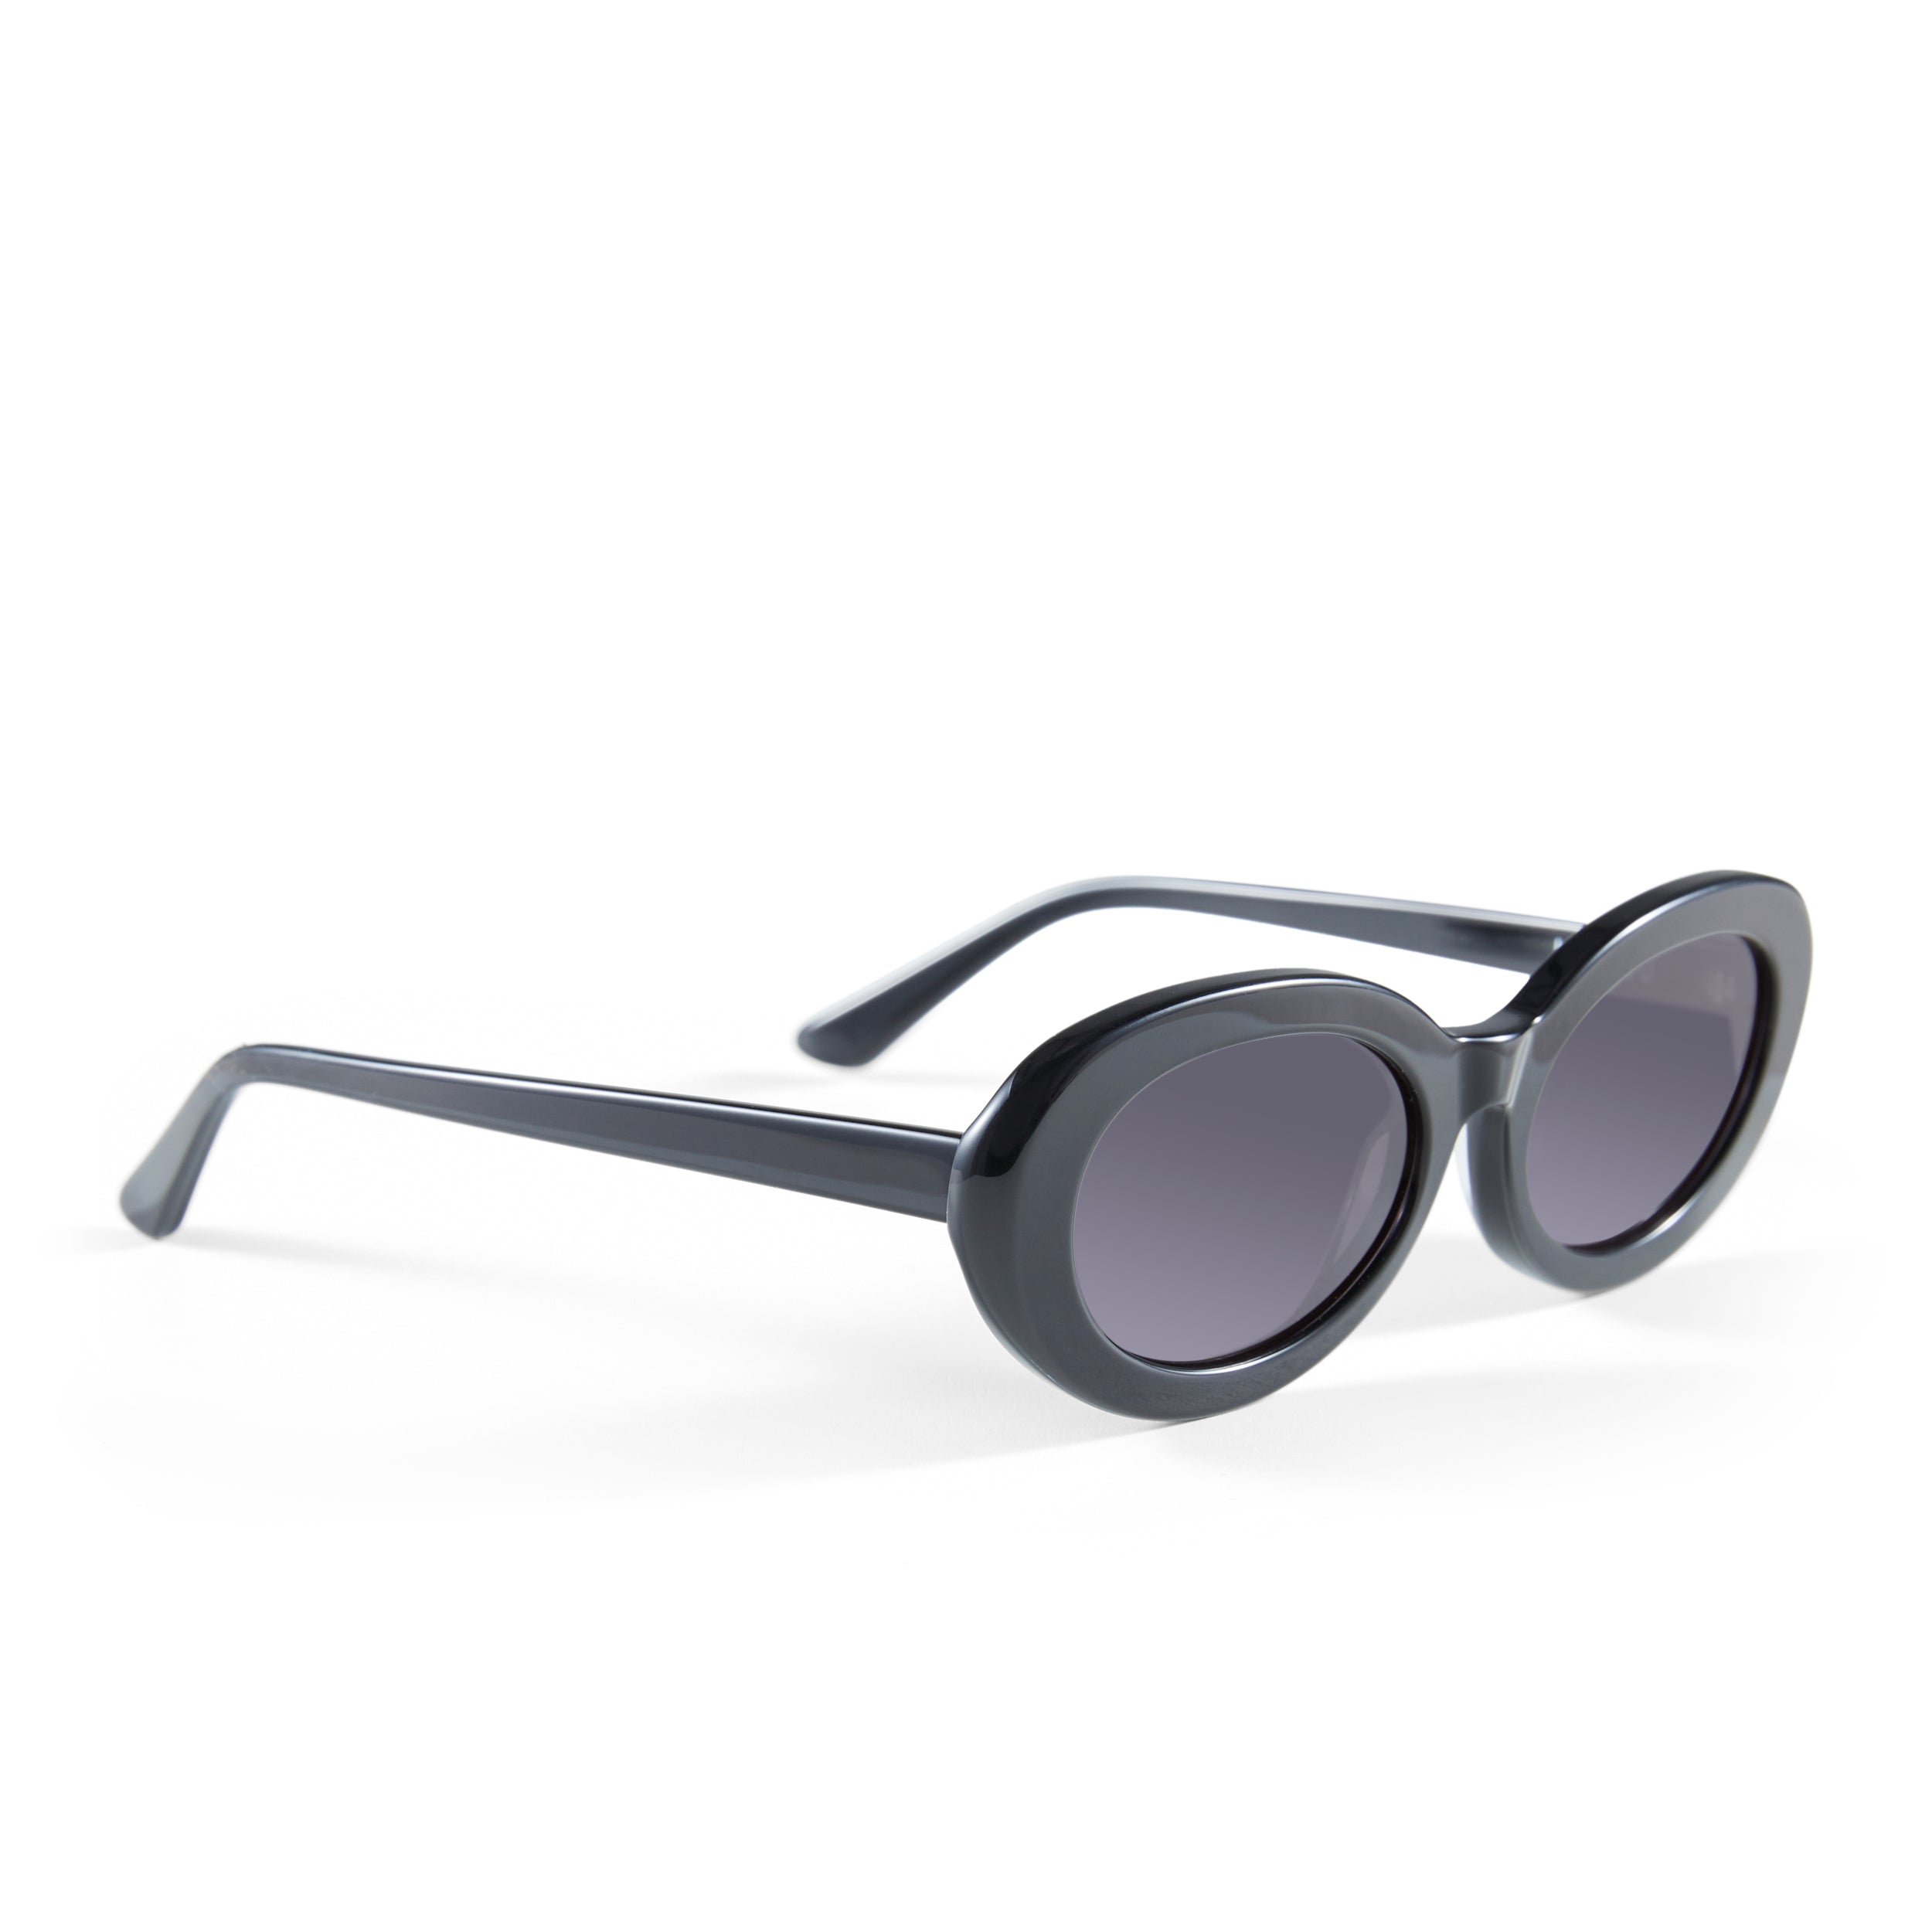 The Estelle, Jet Black - Women's Sunglasses & Eyewear by Luv Lou